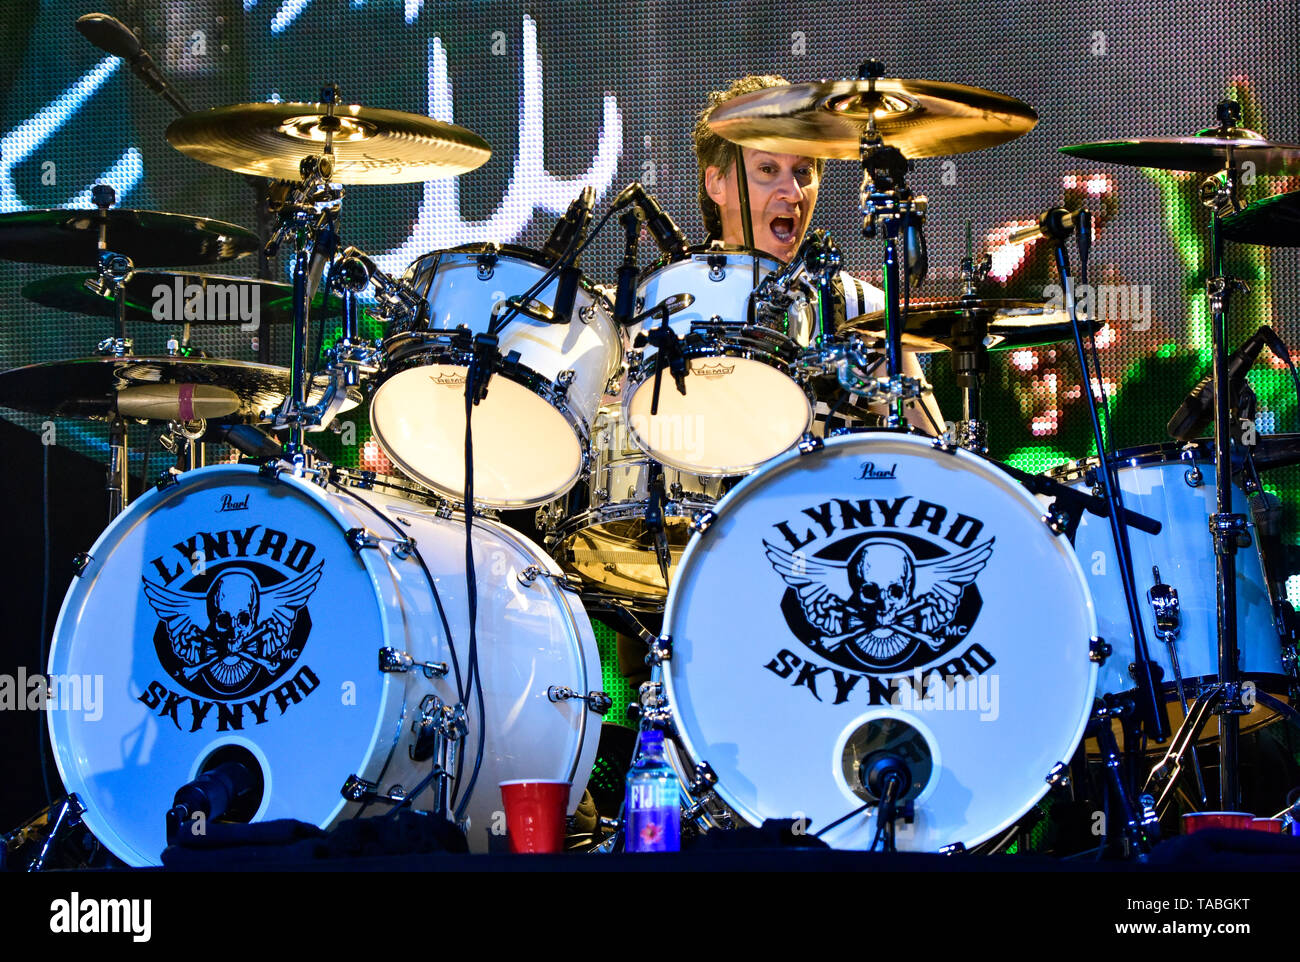 Indio, California, April 27, 2019, Lynyrd Skynyrd on stage performing to an energetic crowd on day 3 of the Stage Coach Country Music Festival. Stock Photo